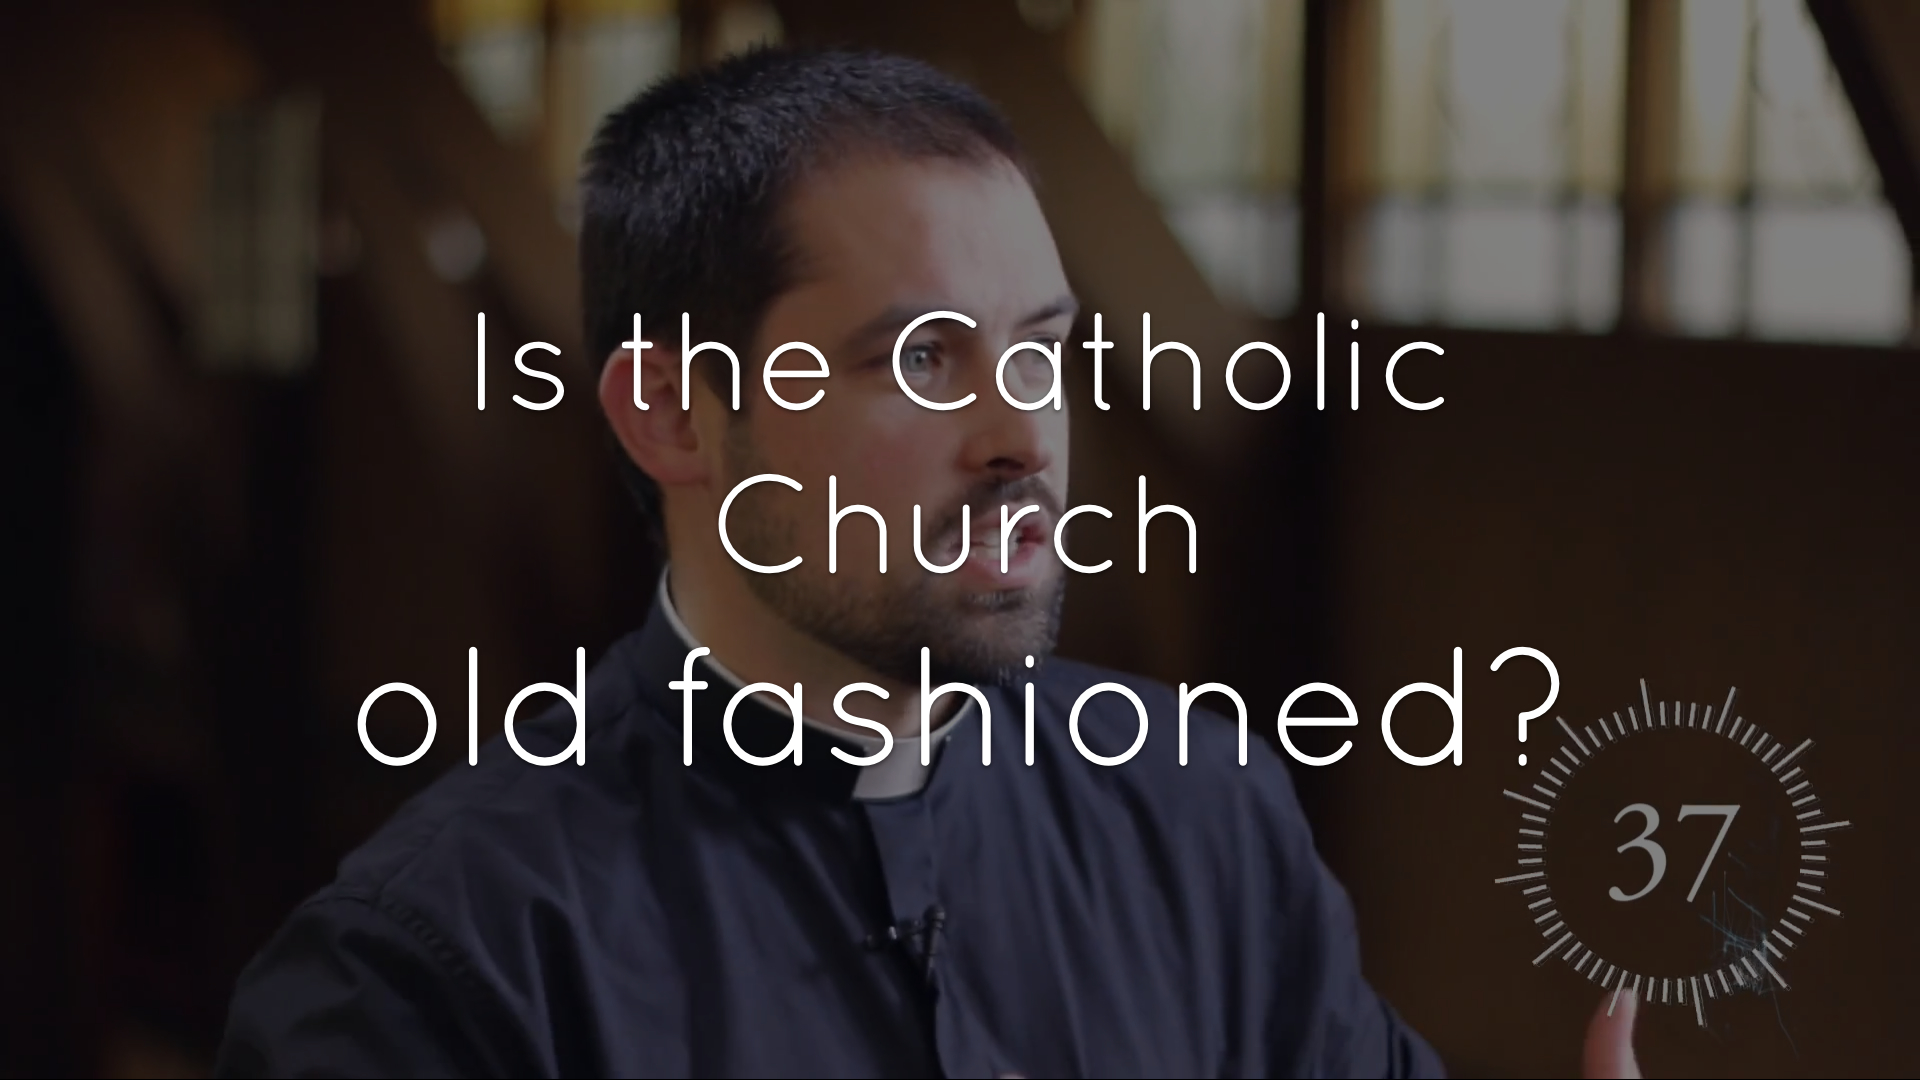 Is the Catholic Church old-fashioned?